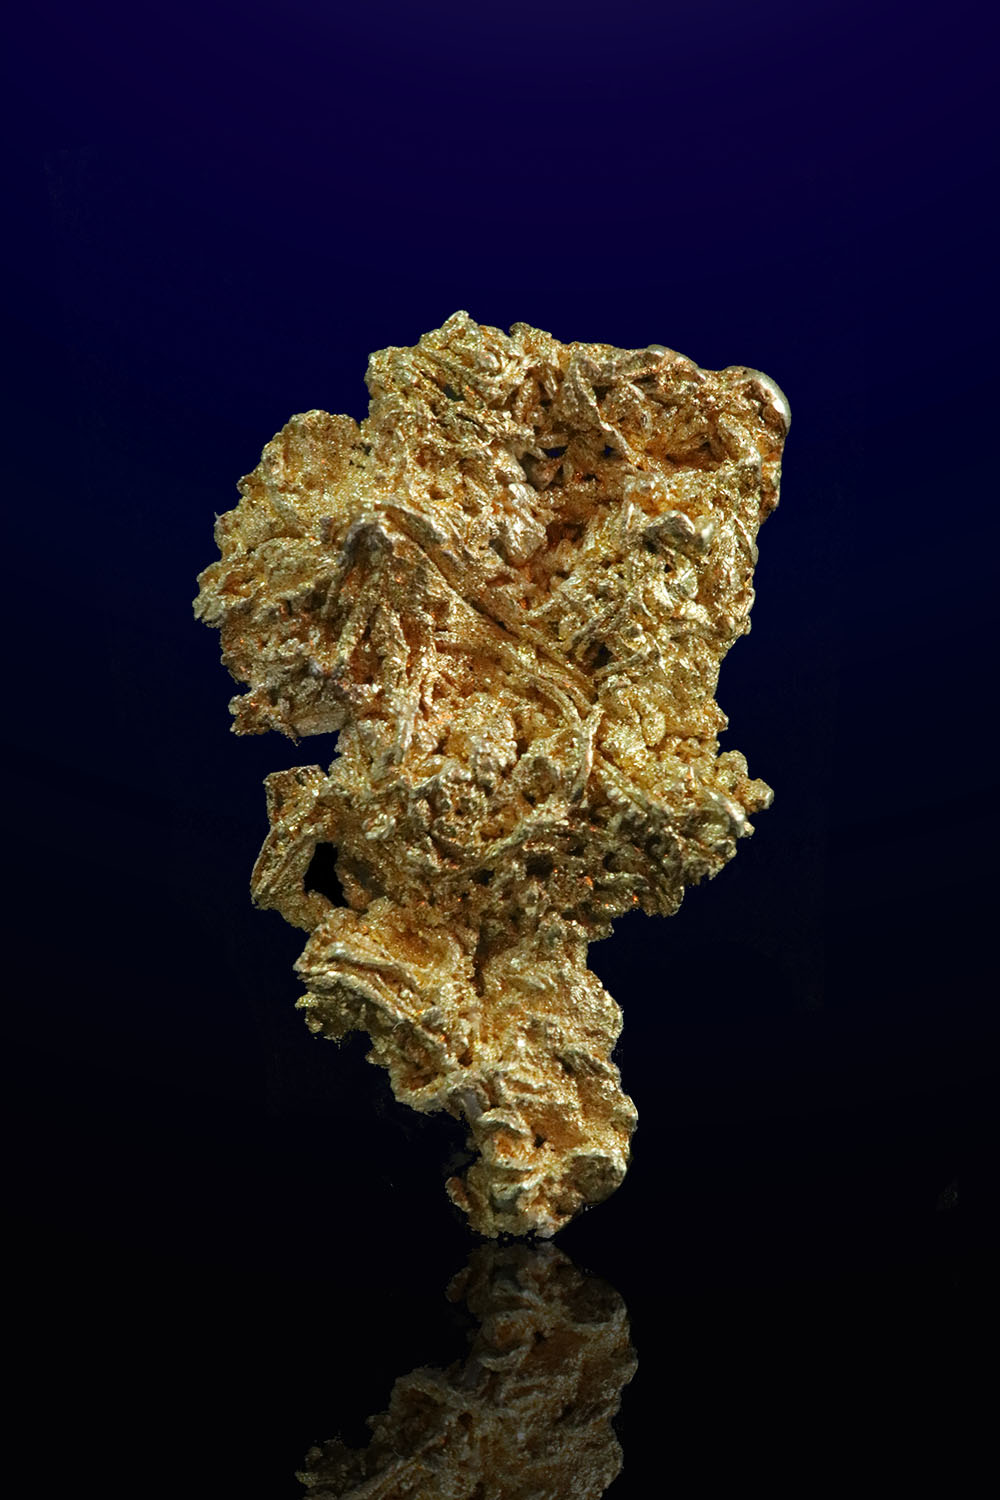 Brilliant Wire Gold Nugget - Liberty Gold Mine